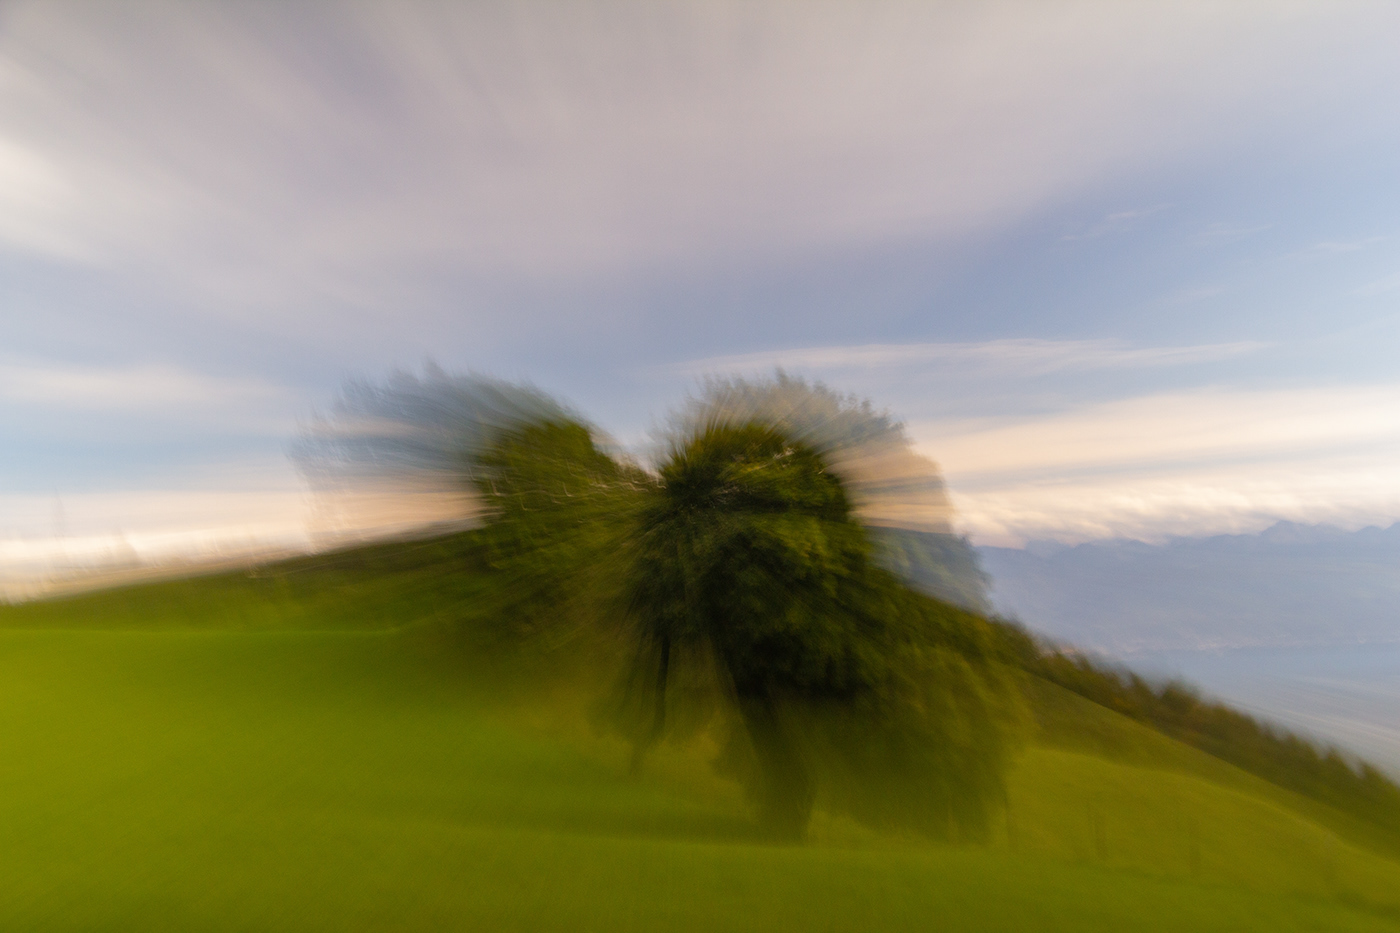 ICM photography in the fields, Switzerland (1st try)